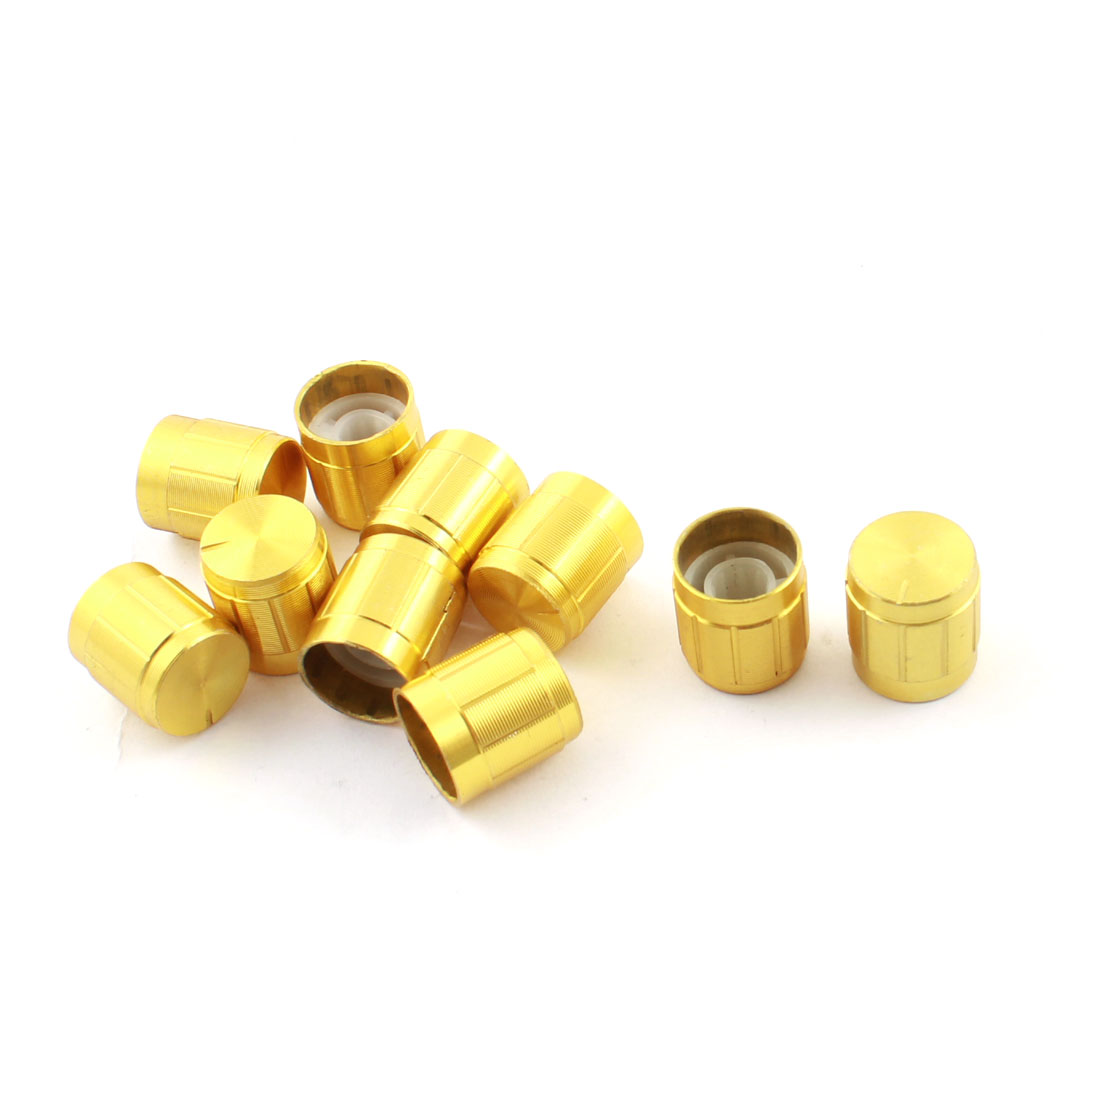 10 Pcs Gold Tone Volume Control Rotary Aluminum Knurled Shaft Potentiometer Knobs 14mm x 15mm